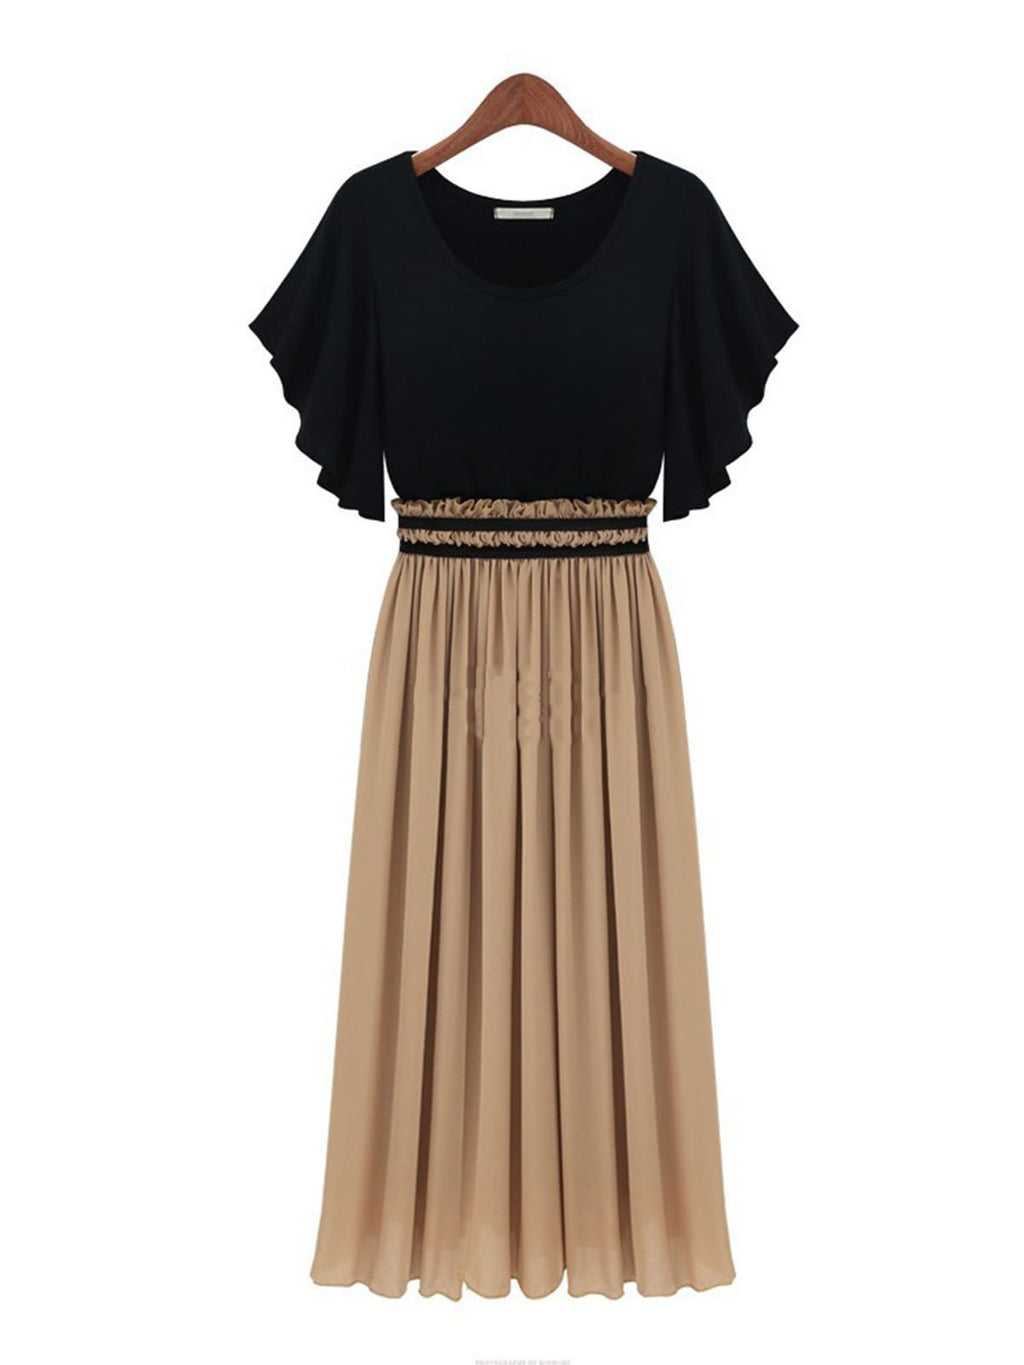 Pleated Skirt Ruffle Waist Round Neck Falre Flounce Sleeve Chiffon Dress